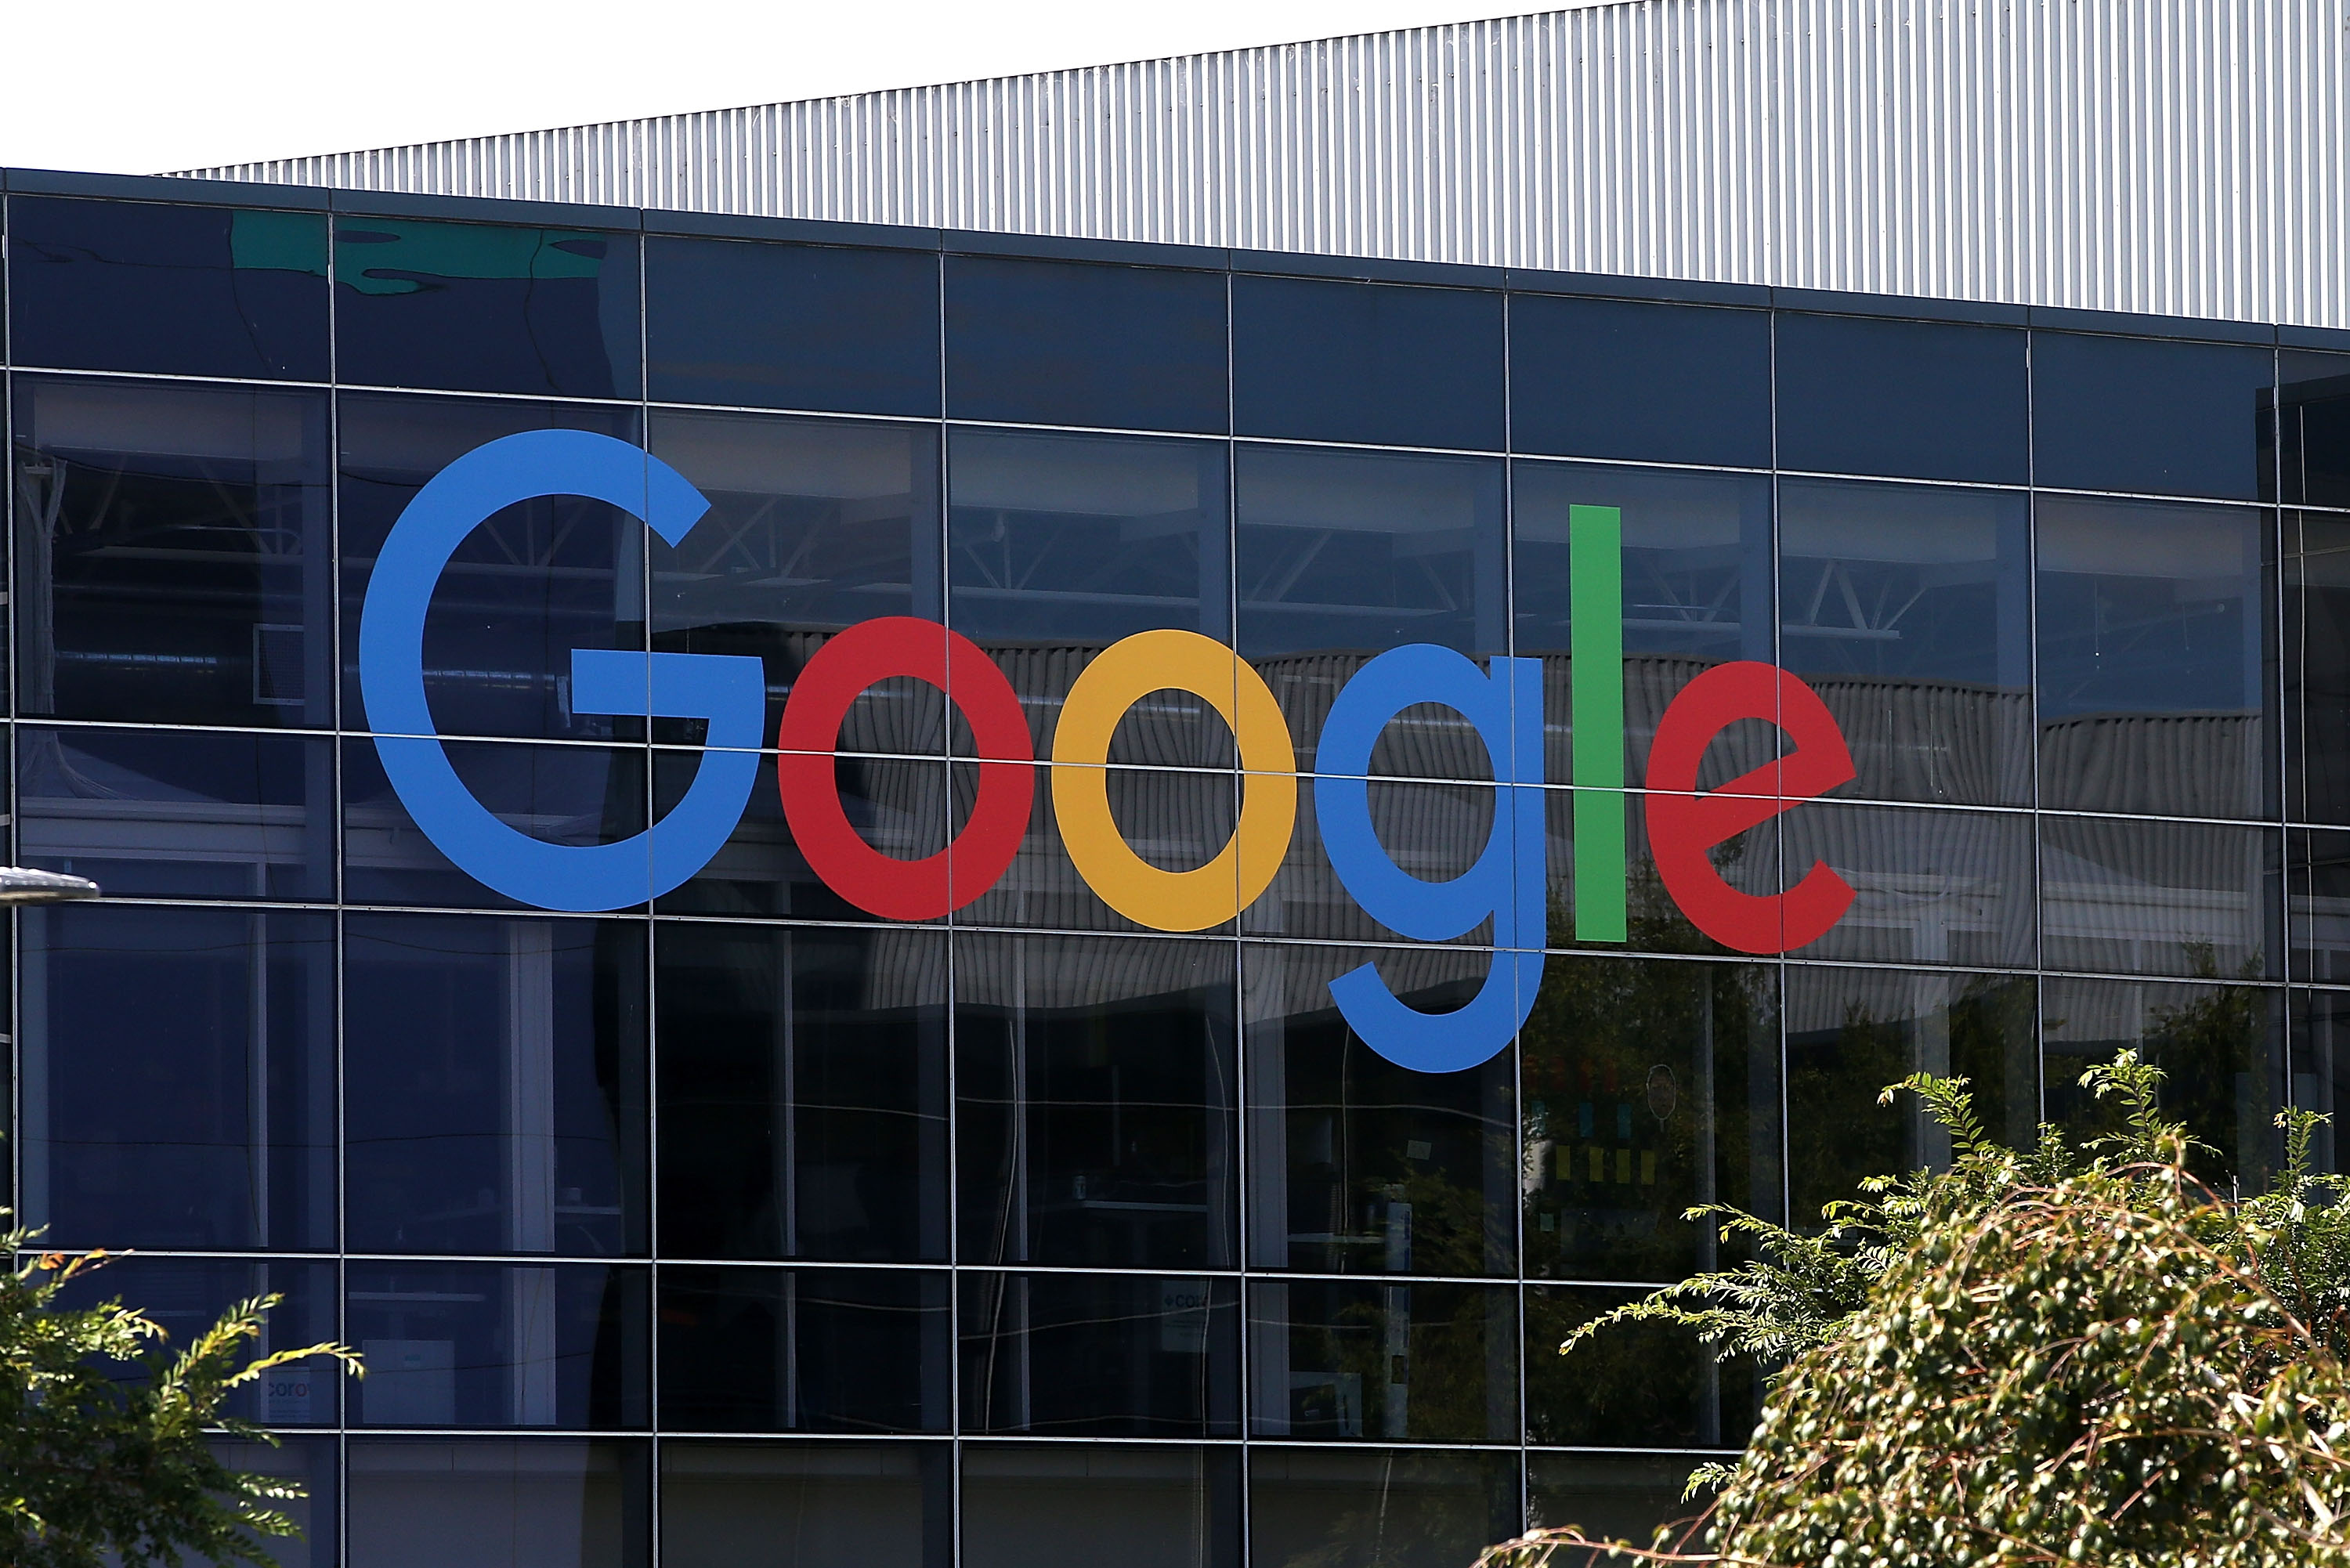 The new Google logo is displayed at the Google headquarters in Mountain View, Calif., on Sept. 2, 2015.